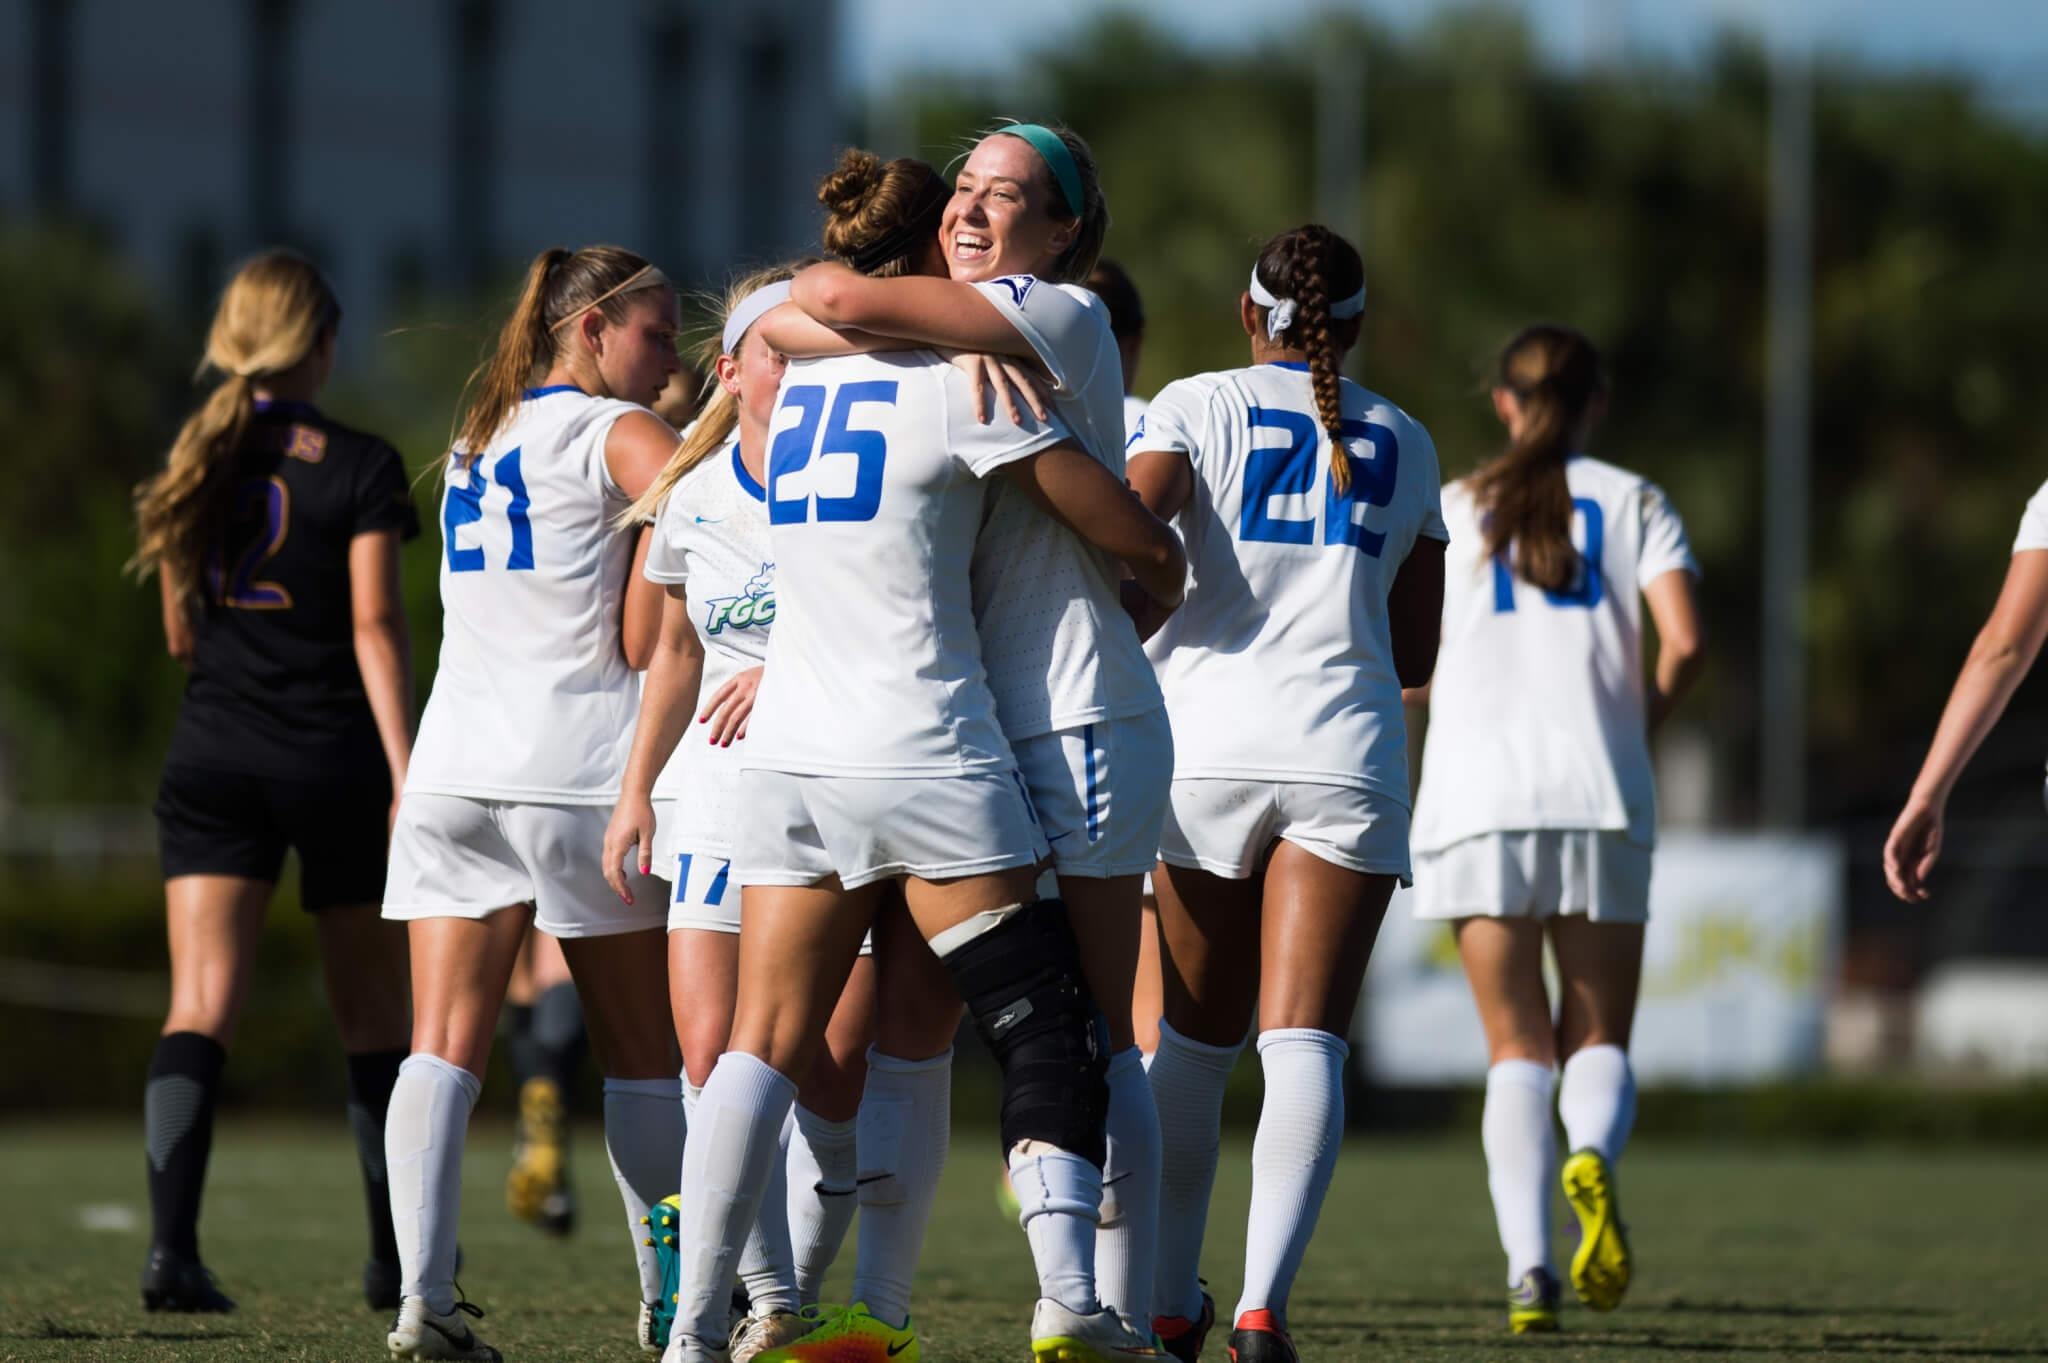 FGCU women's soccer team earns first conference win over Kennesaw State